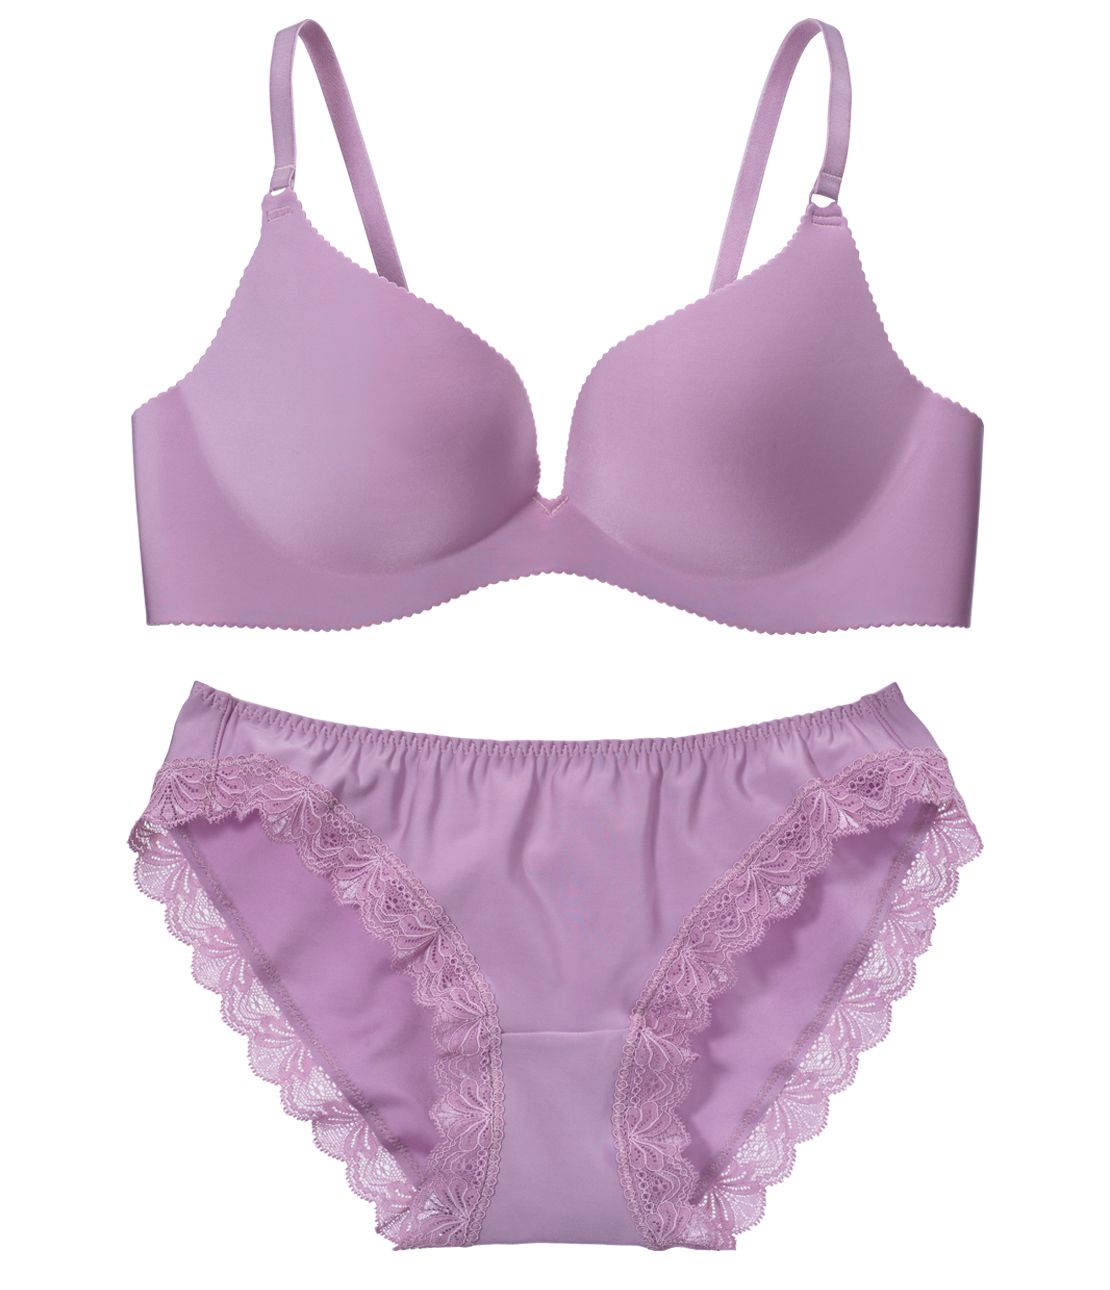 YM simple non-wire T-Shirt Bra Set